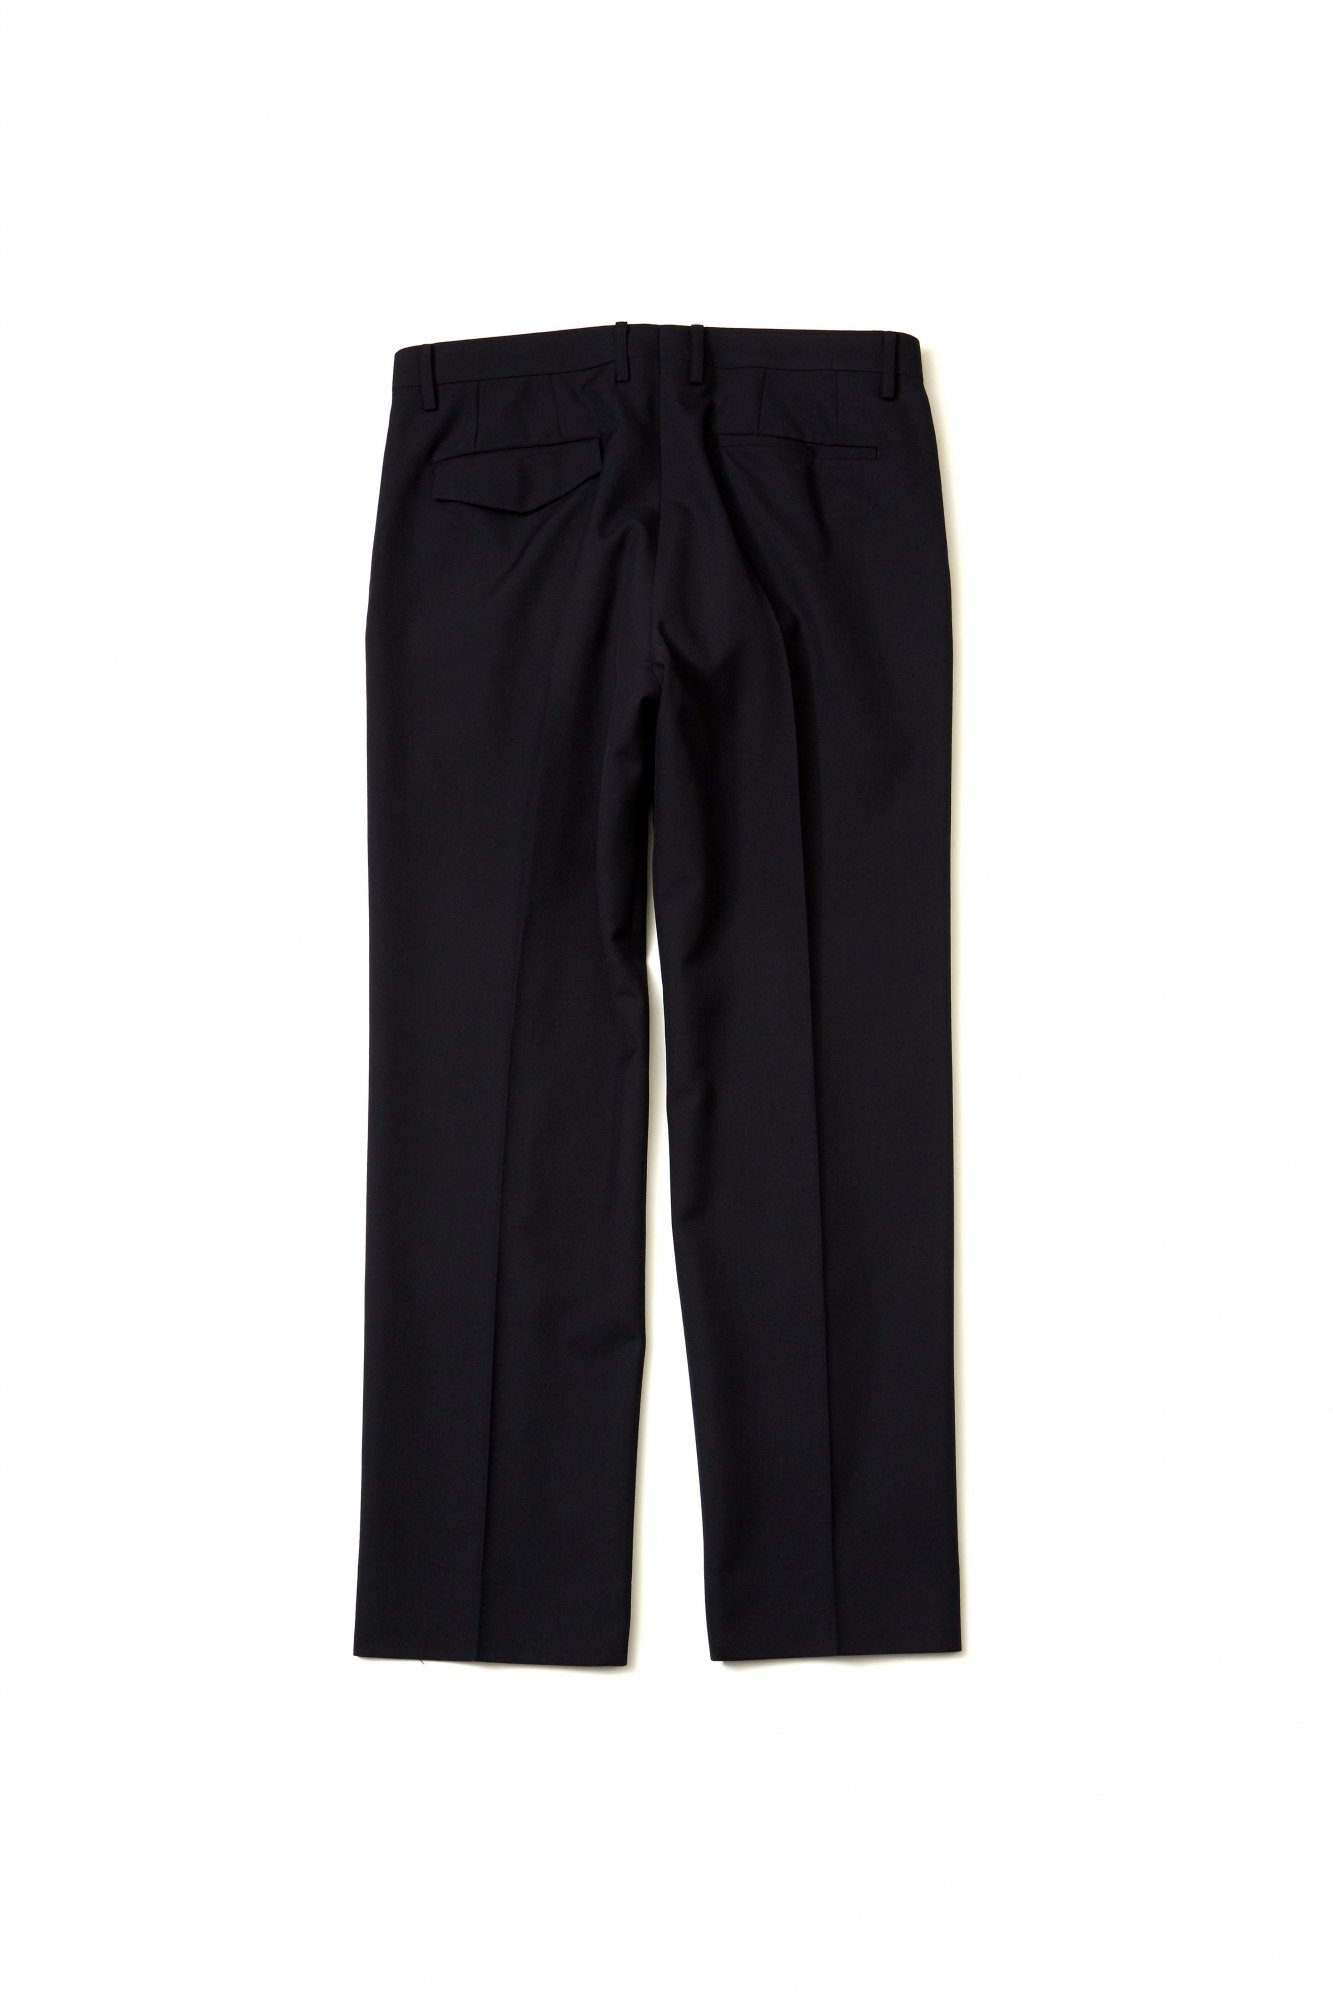 soe<br />Perfect Slacks for First Man / NAVY<img class='new_mark_img2' src='https://img.shop-pro.jp/img/new/icons14.gif' style='border:none;display:inline;margin:0px;padding:0px;width:auto;' />